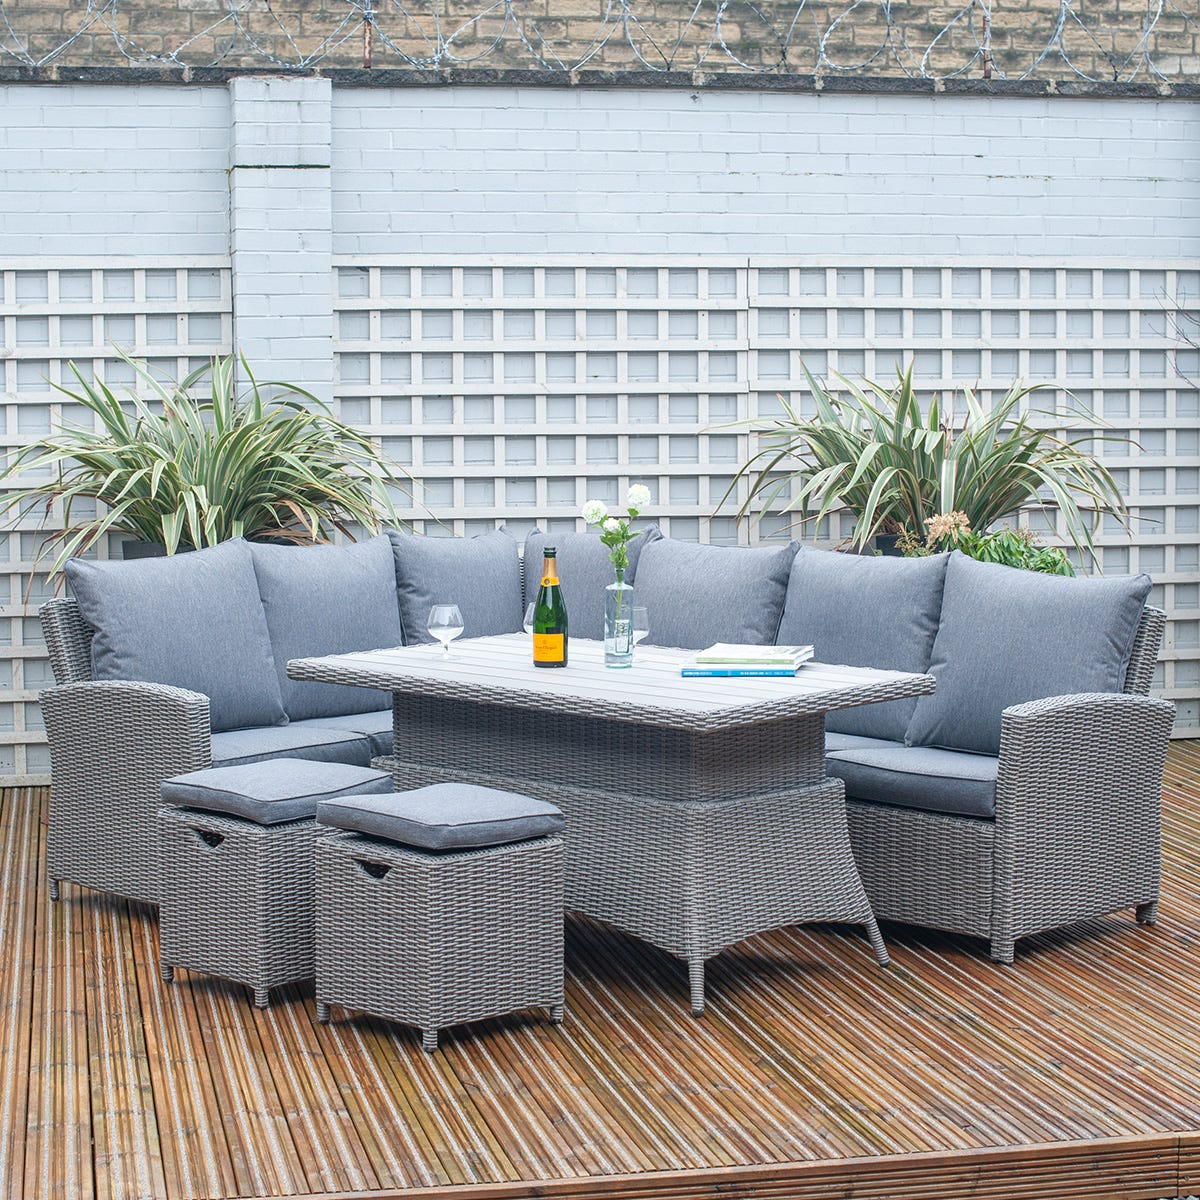 Pacific Lifestyle Barbados Dining Corner Set with Adjustable Table - Slate Grey